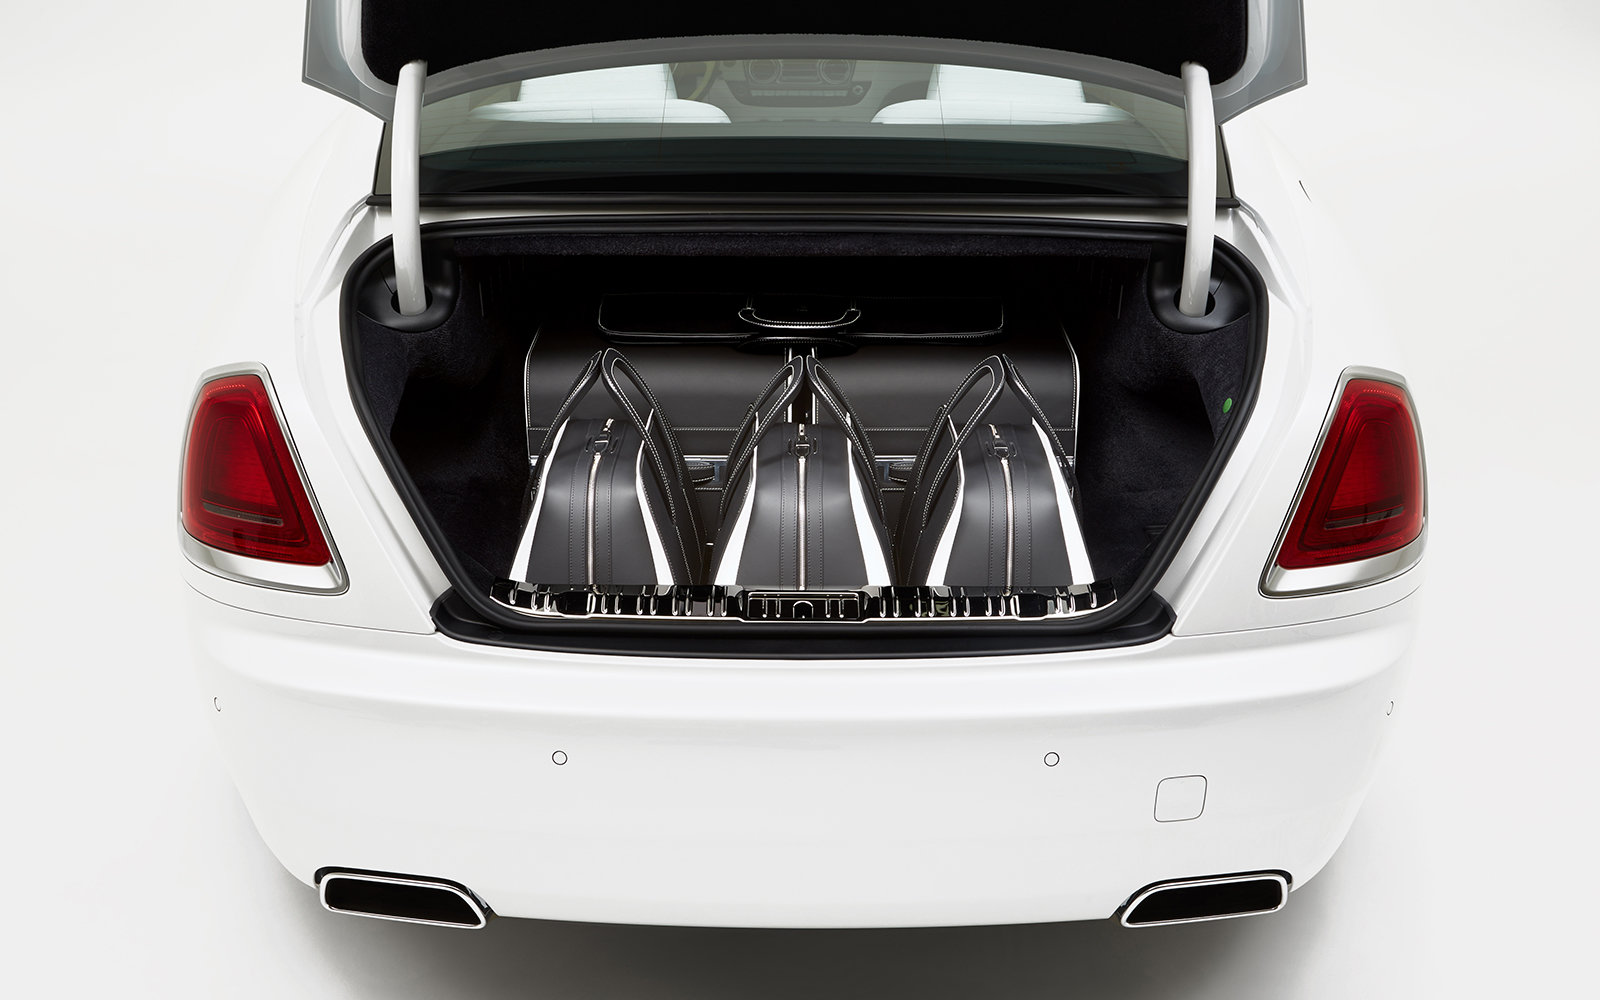 Rolls Royce Luggage